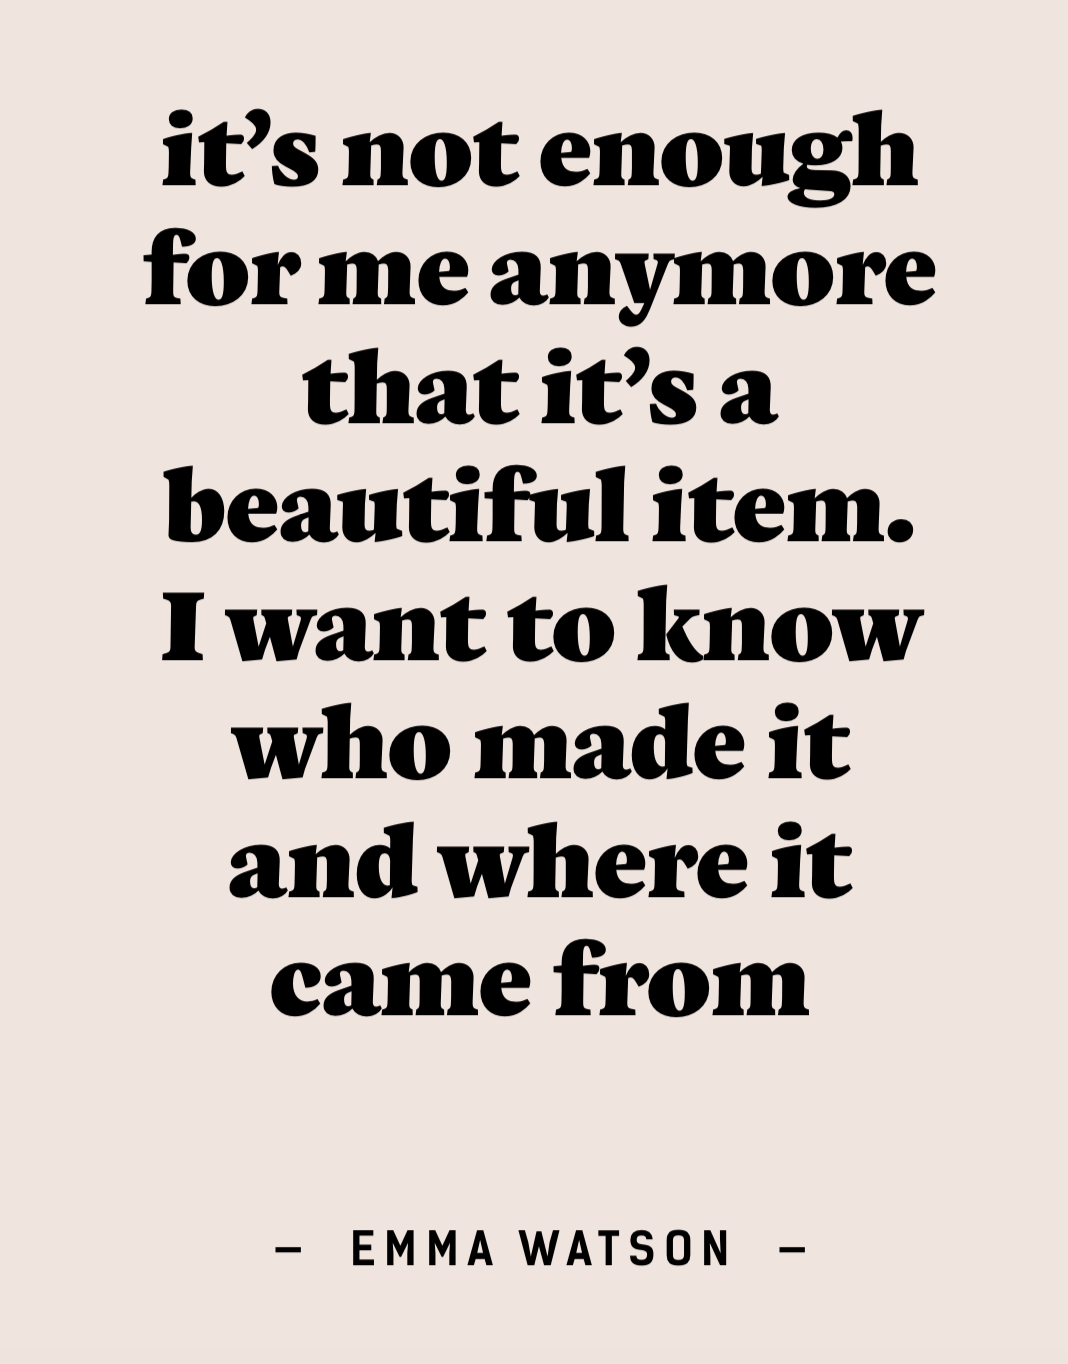 Quote by the Actress Emma Watson